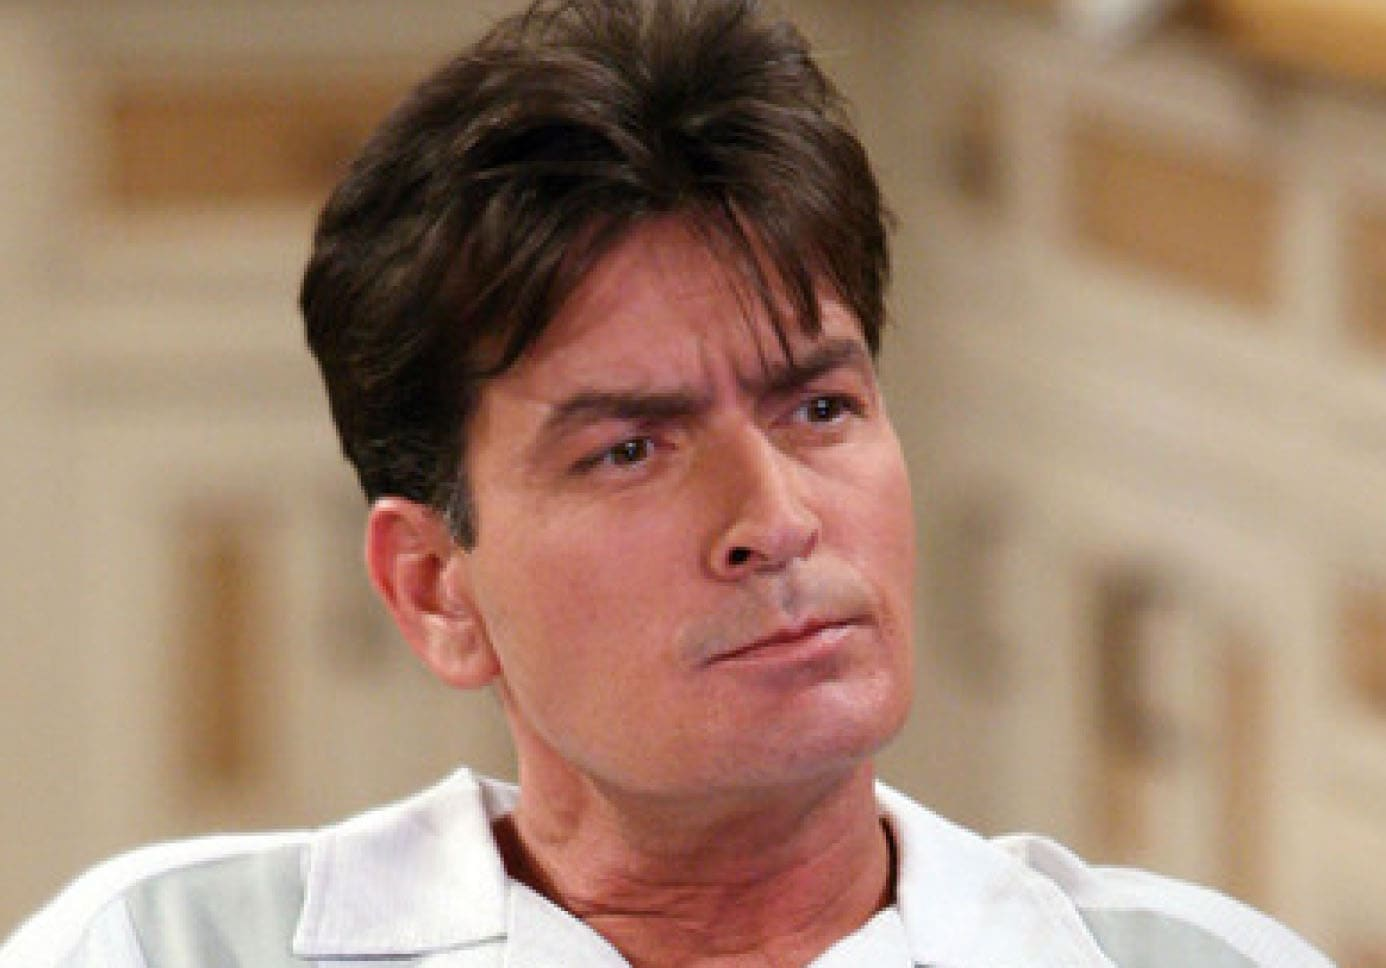 13 Charlie Sheen Haircut 2018 Mens Haircut Styles